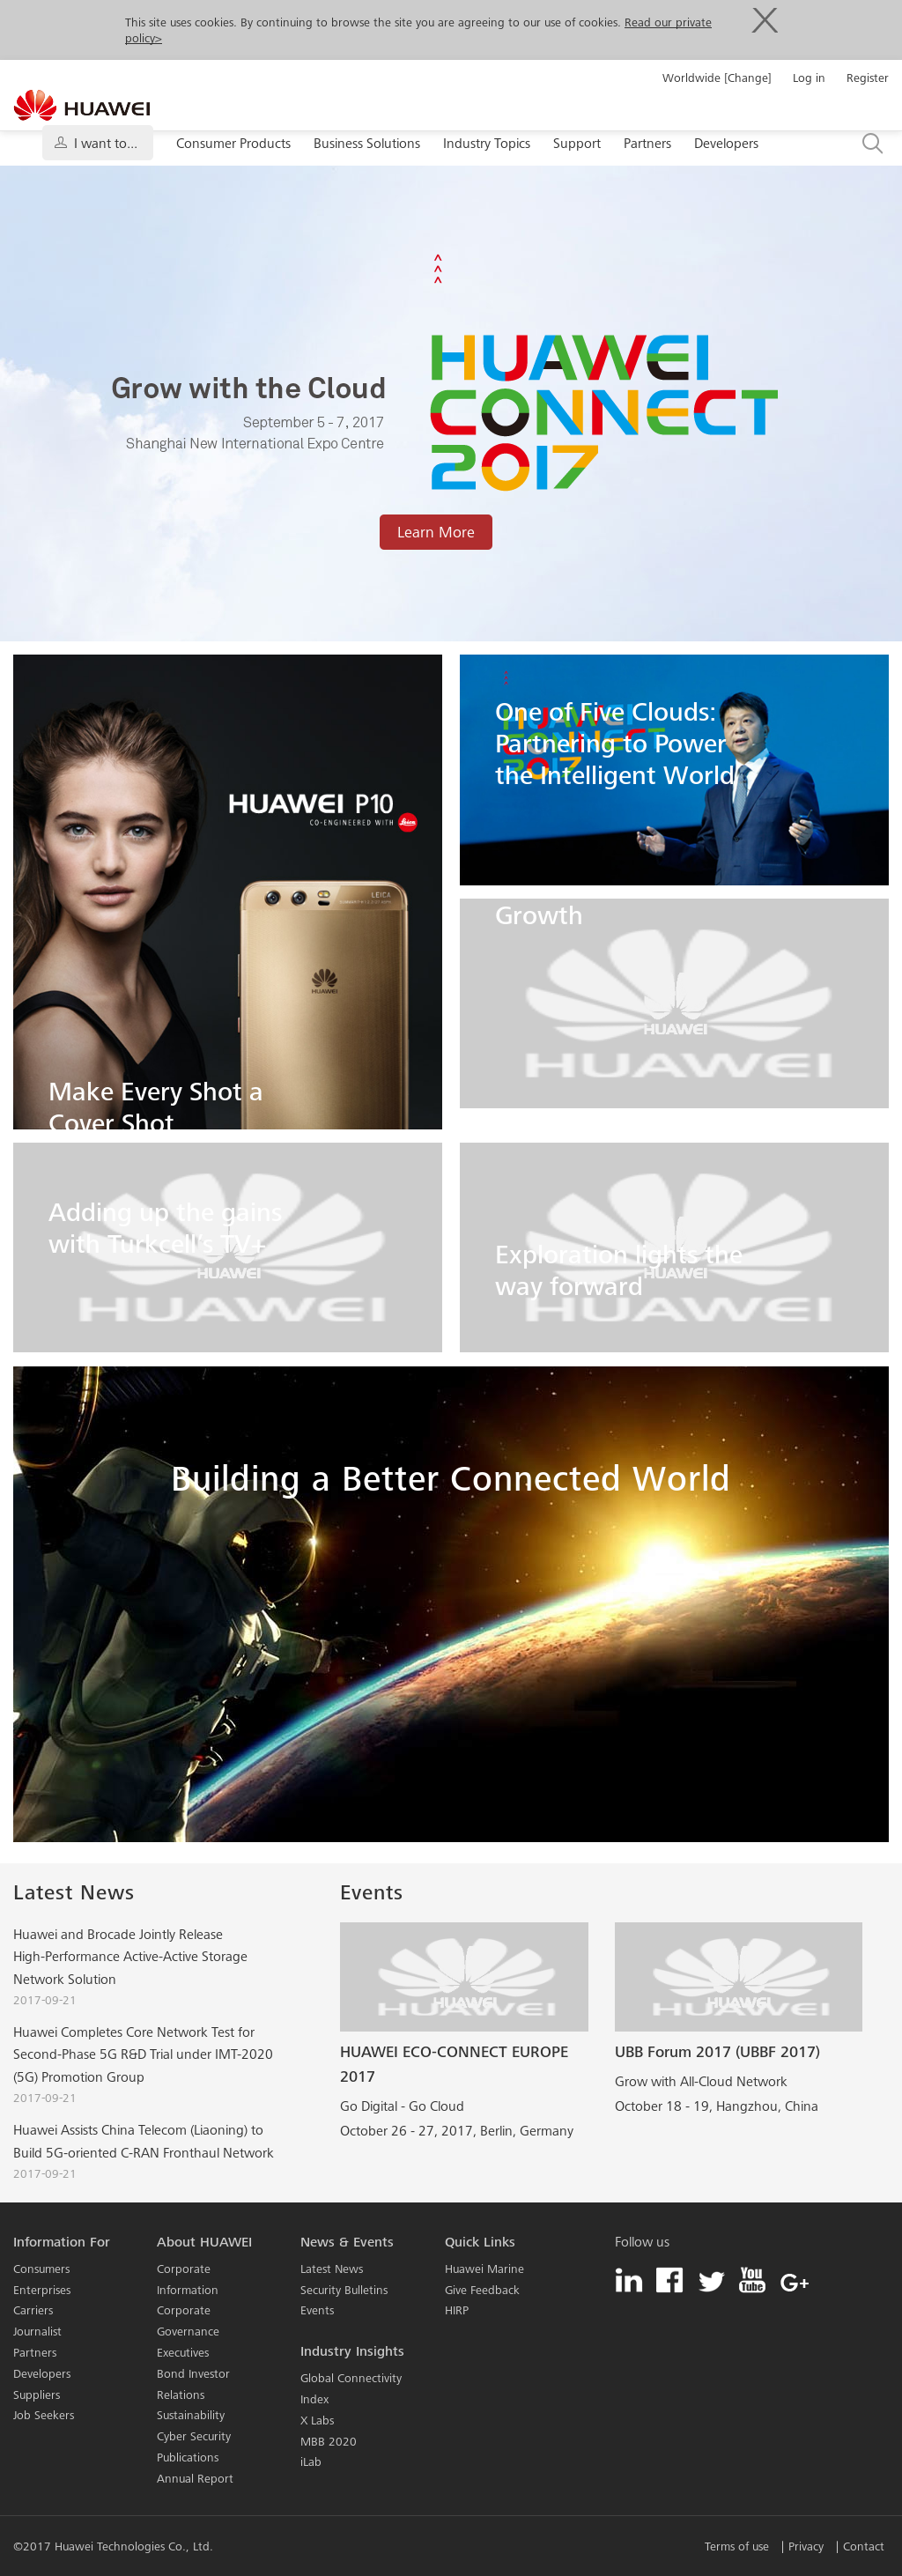 Huawei Competitors, Revenue and Employees - Owler Company Profile